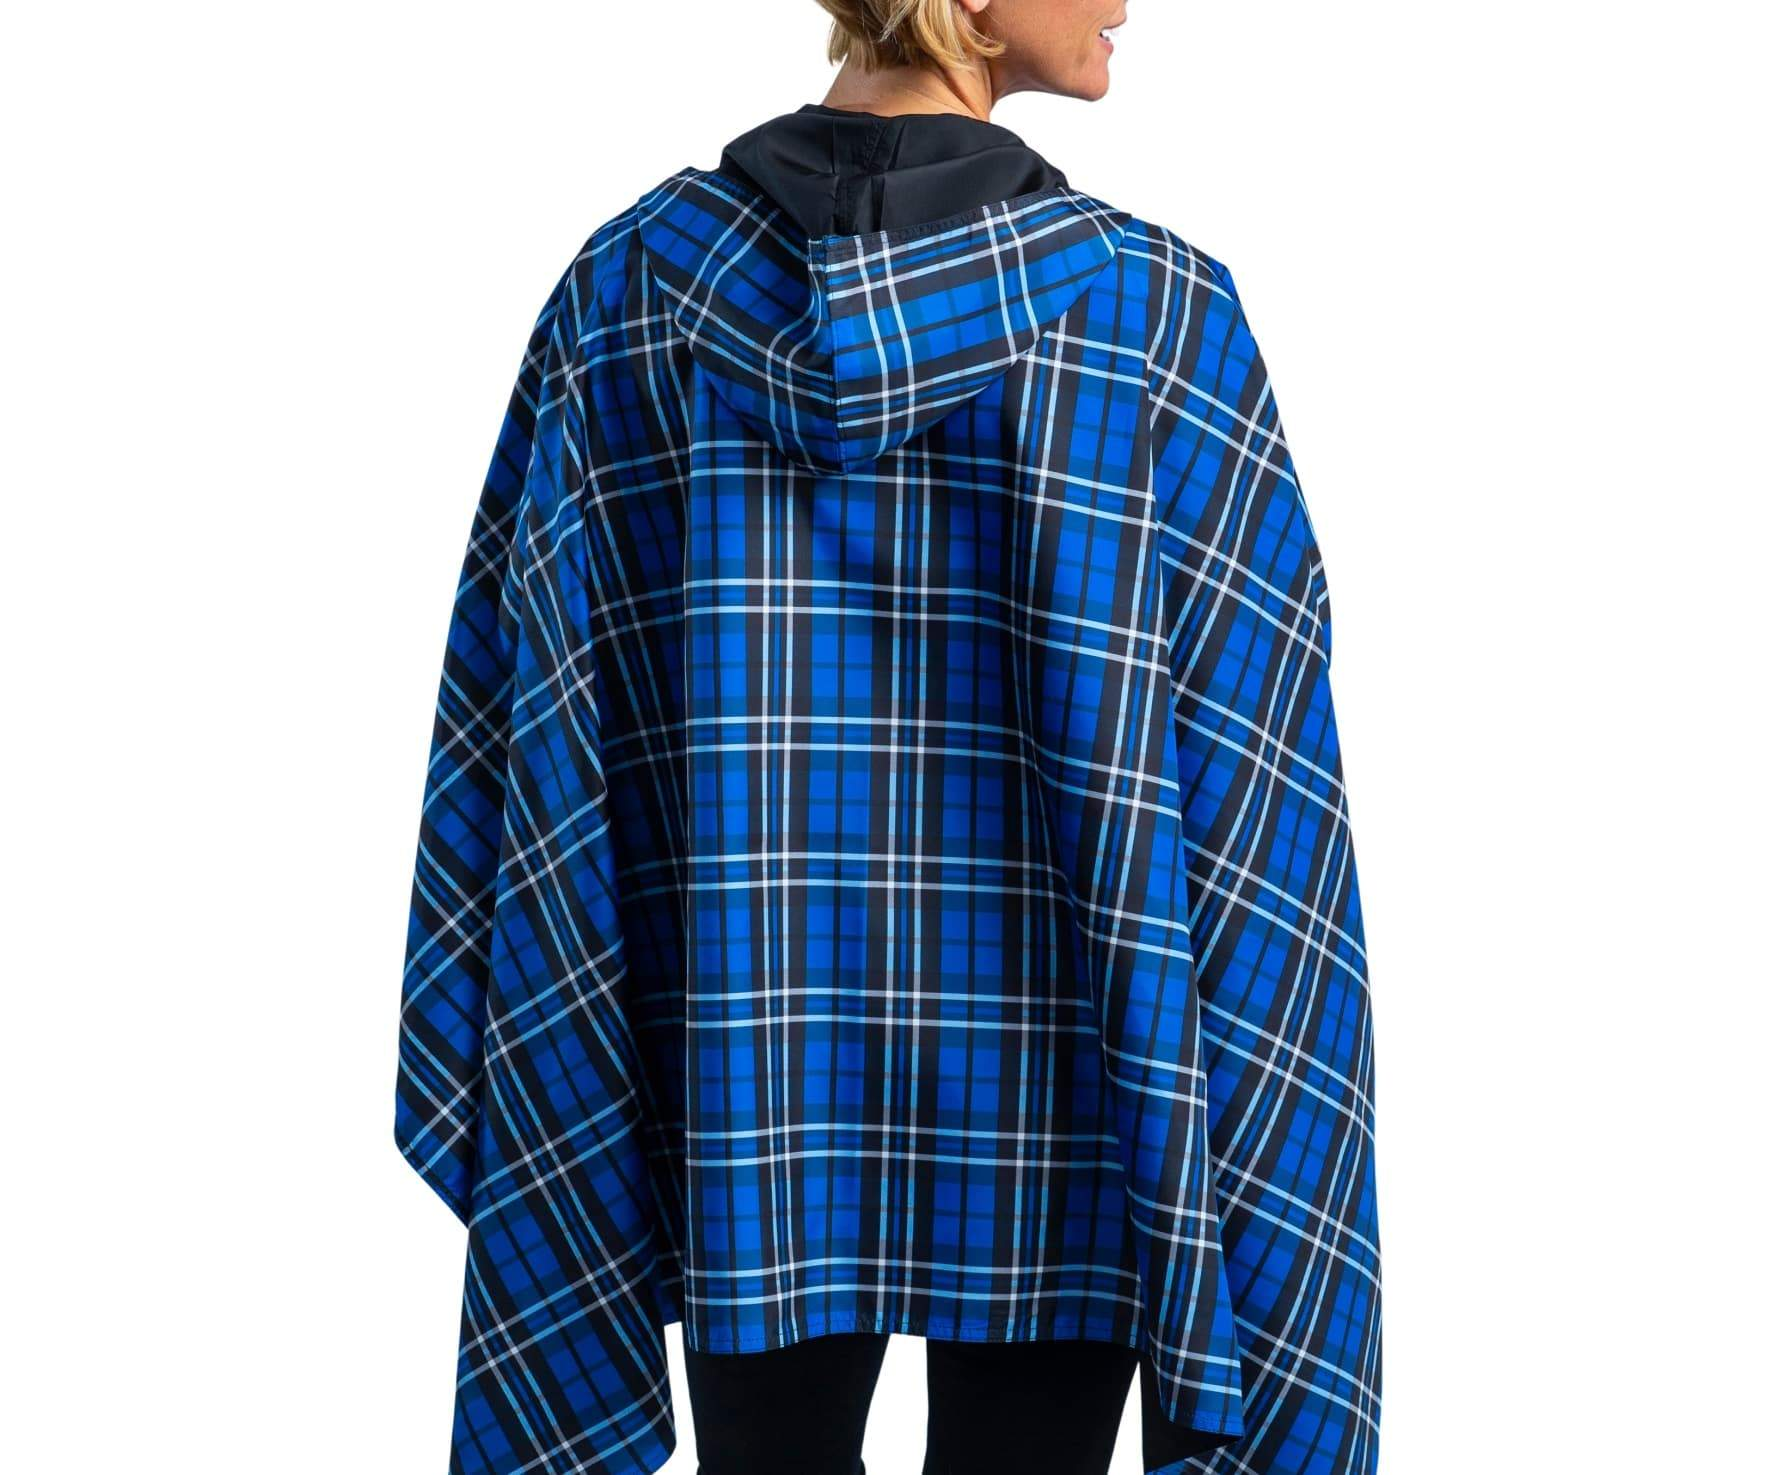 Women wearing a Black & Royal Tartan RainCaper travel cape with the Black side out, revealing the Royal Tartan print at the lapels and cuffs